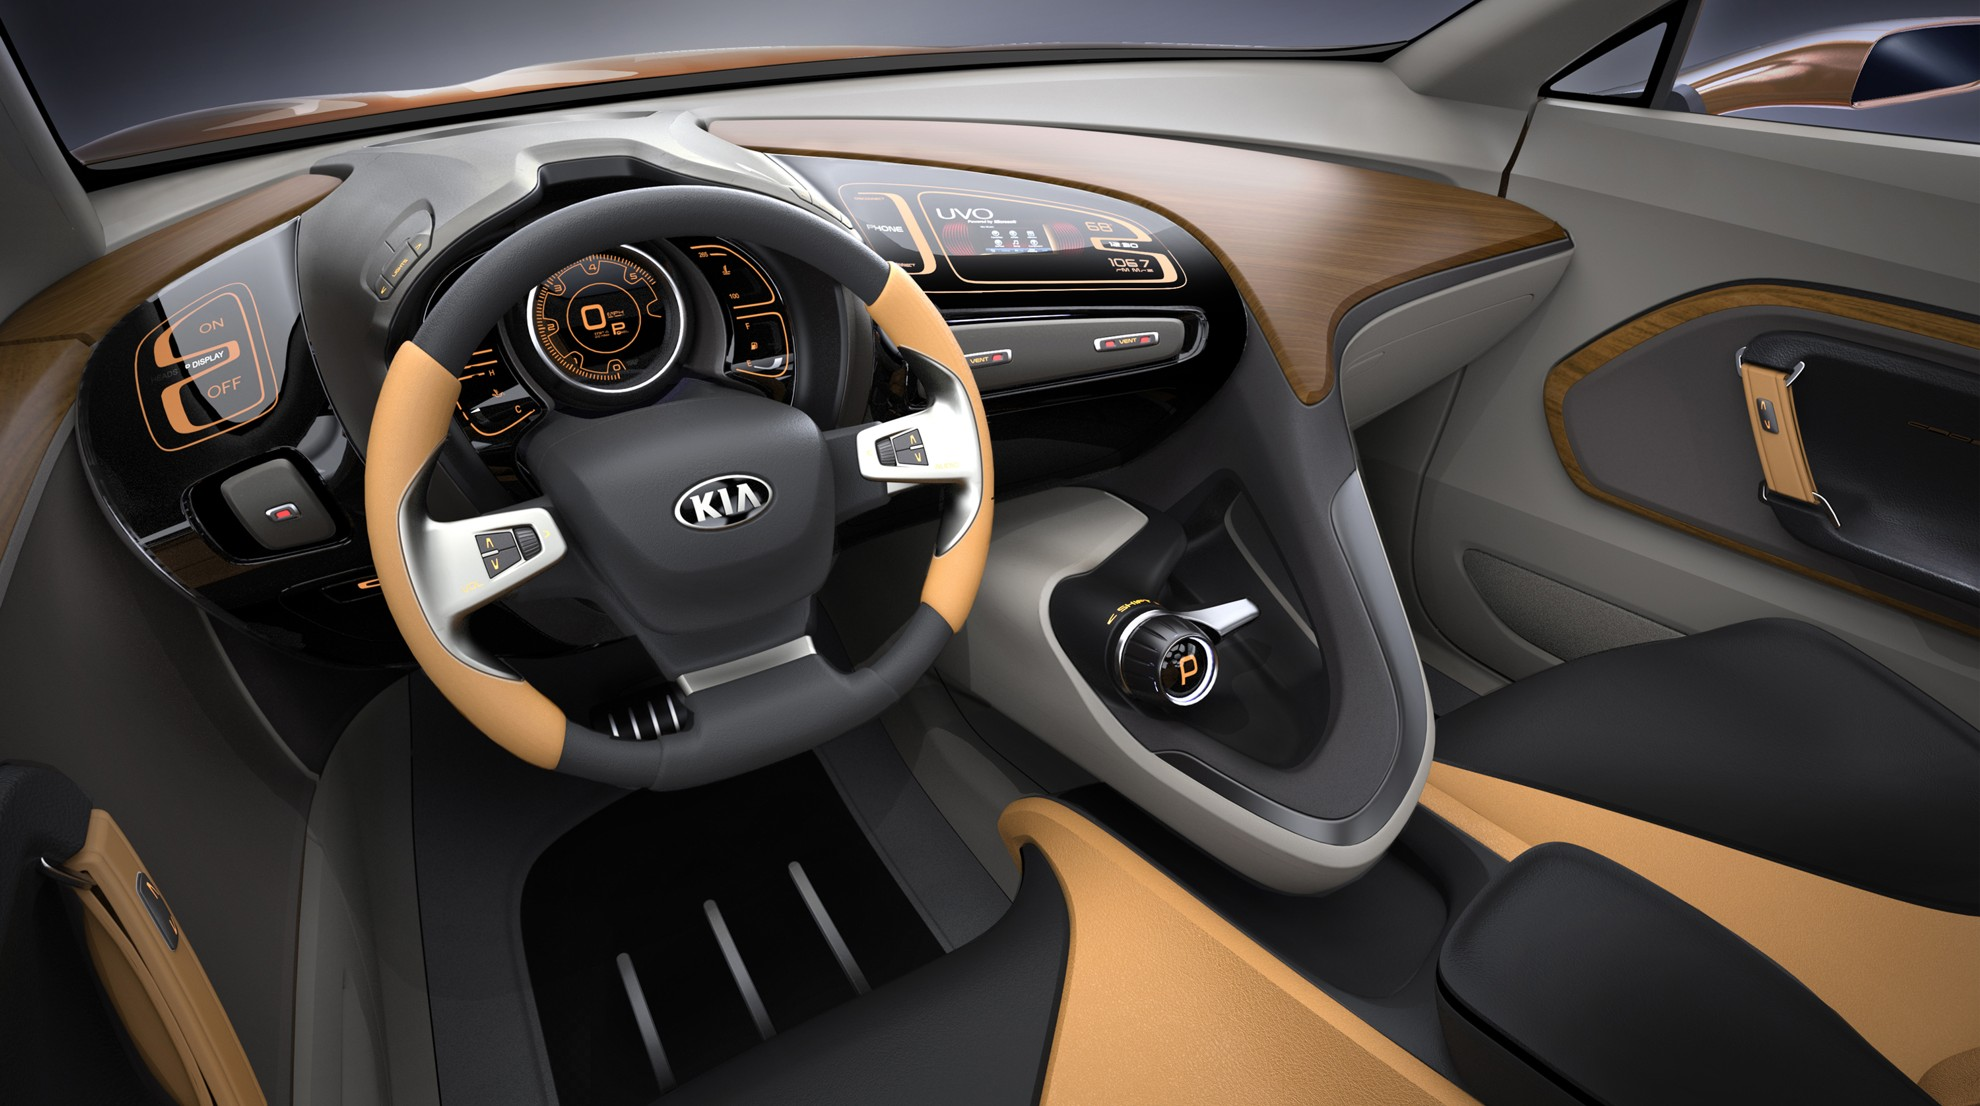 KIA Concept Car Inside